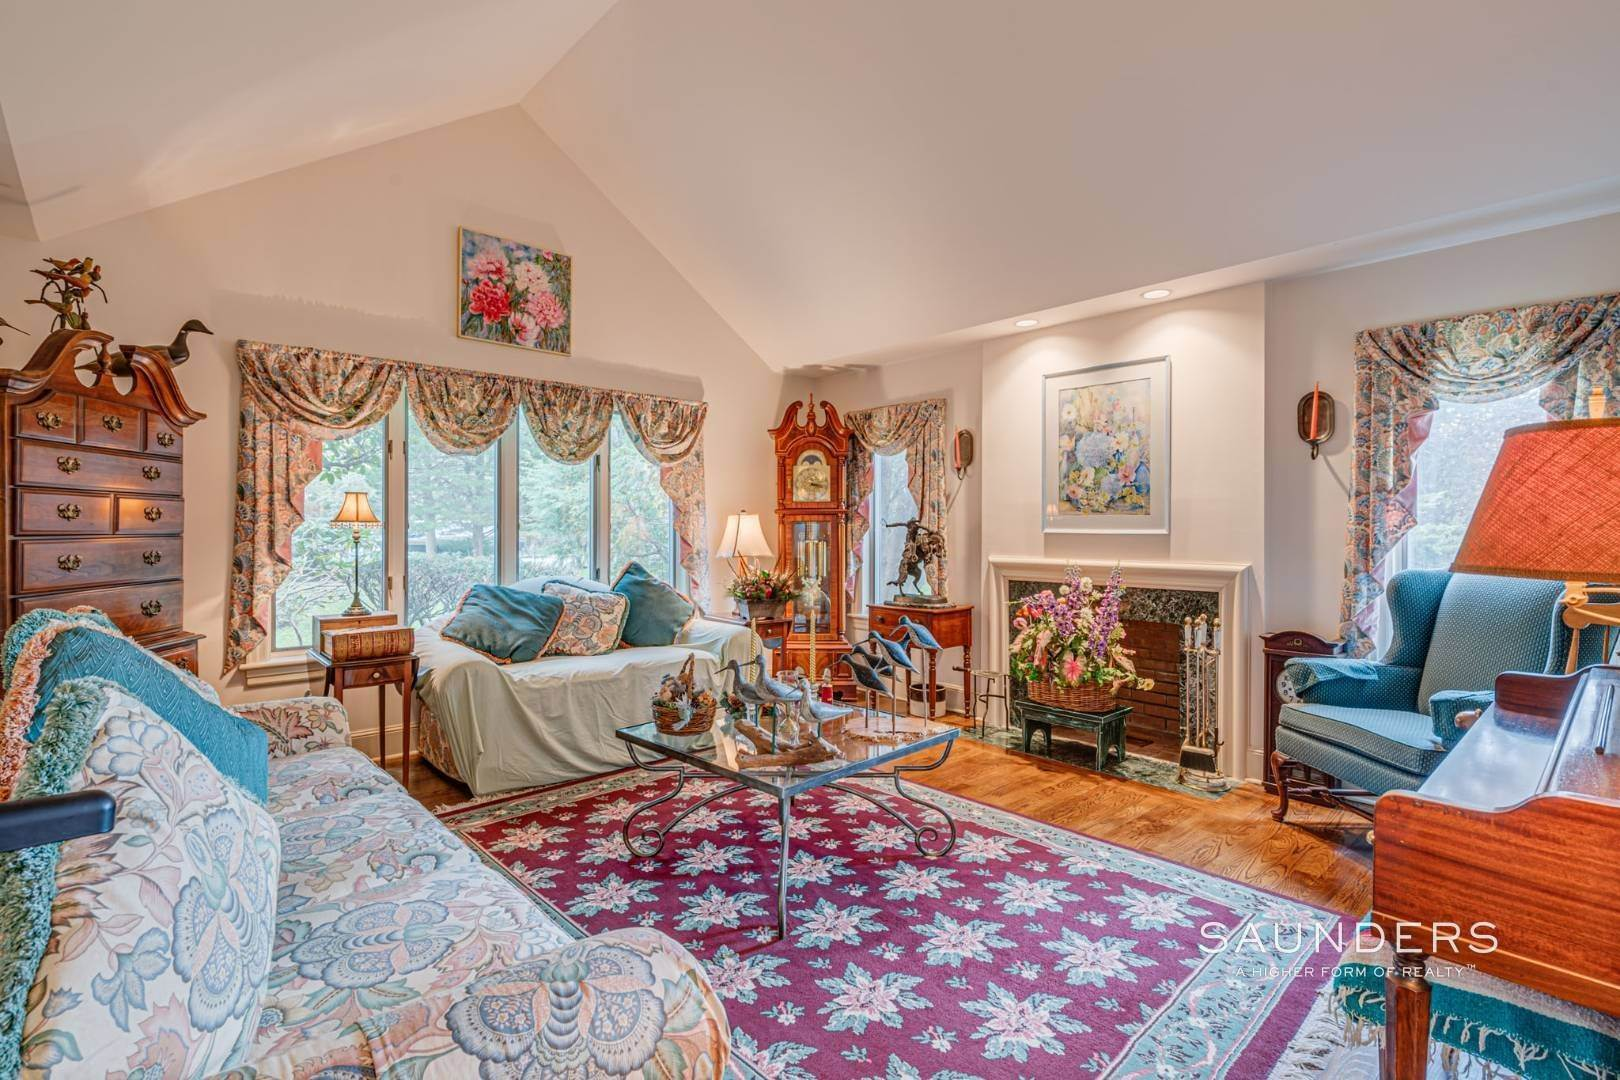 12. Single Family Homes for Sale at Prime 2.8 Acres In Sagaponack Village W/ Barn & Room For Tennis 44 Greenleaf Lane, Sagaponack Village, Southampton Town, NY 11962